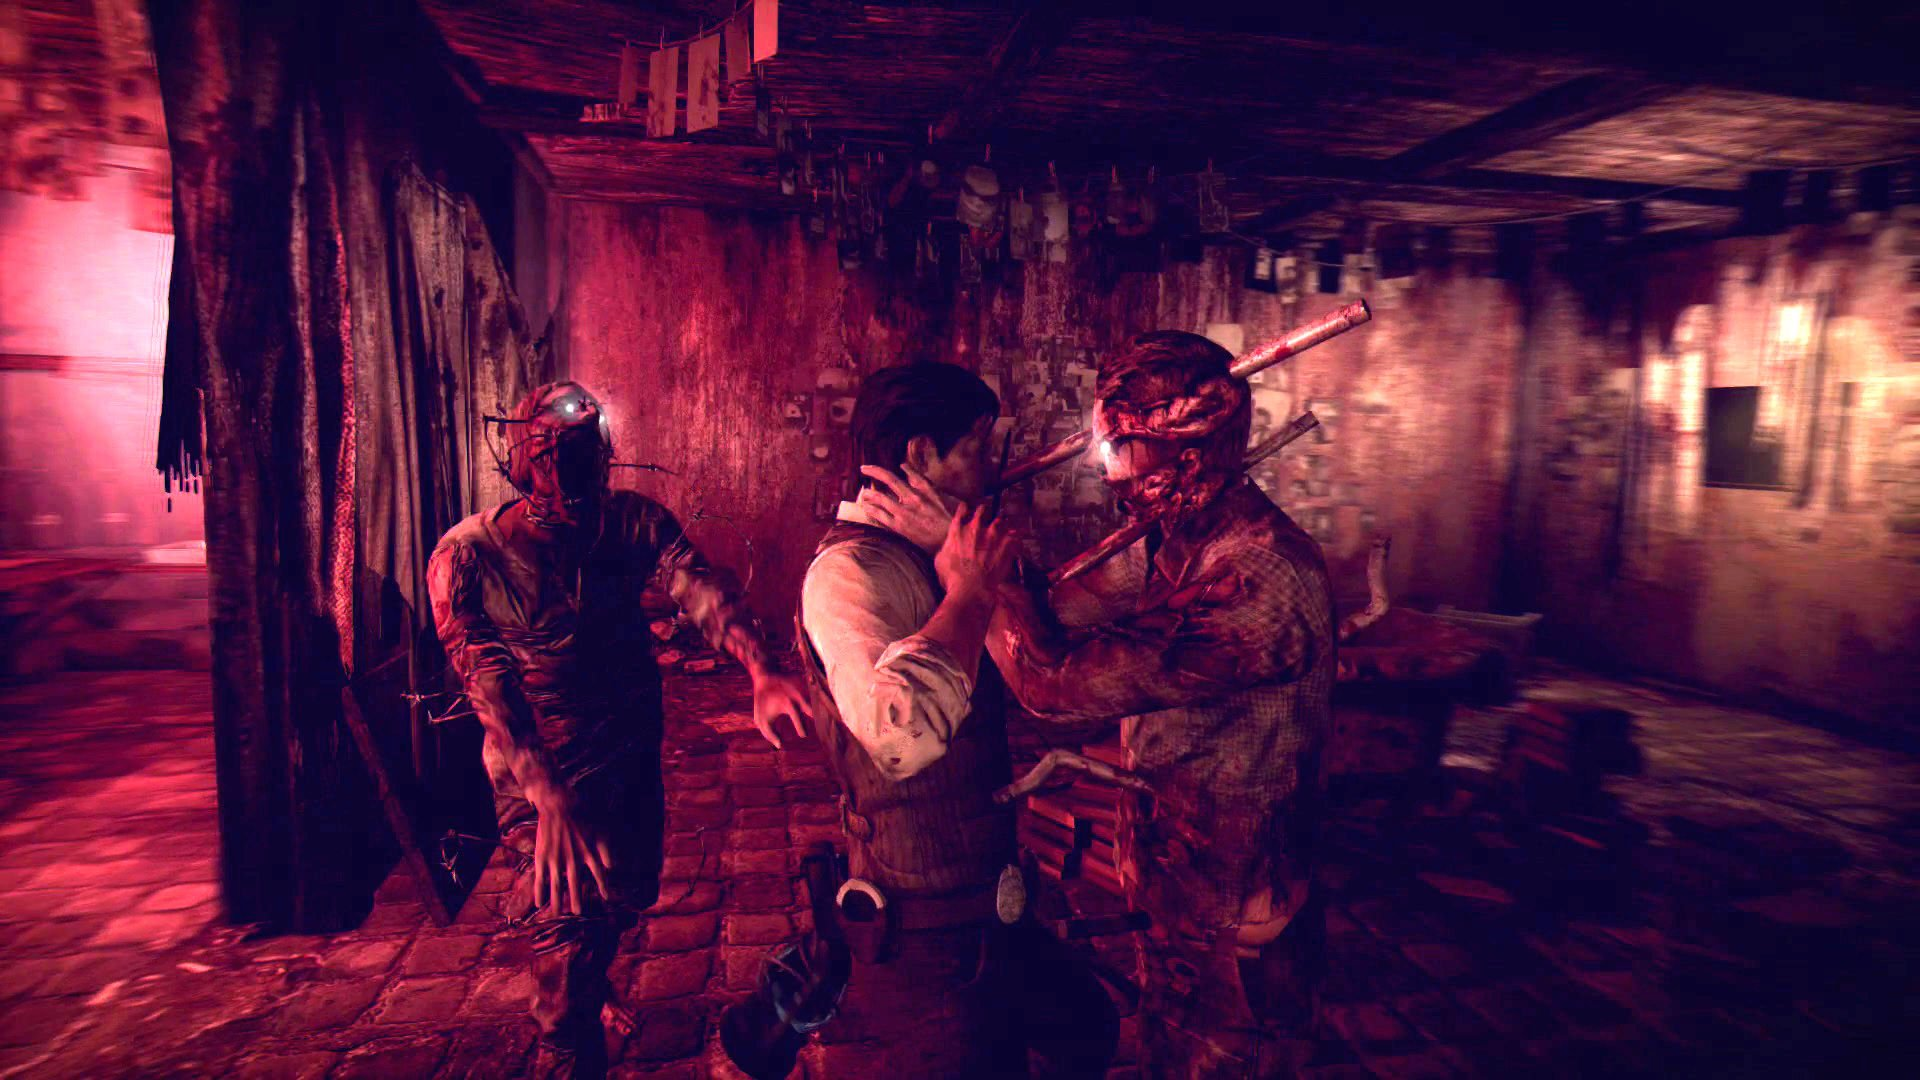 The Evil Within 2 Wallpaper 01 1920x1080: THE EVIL WITHIN Survival Horror Dark Blood Zombie Fa